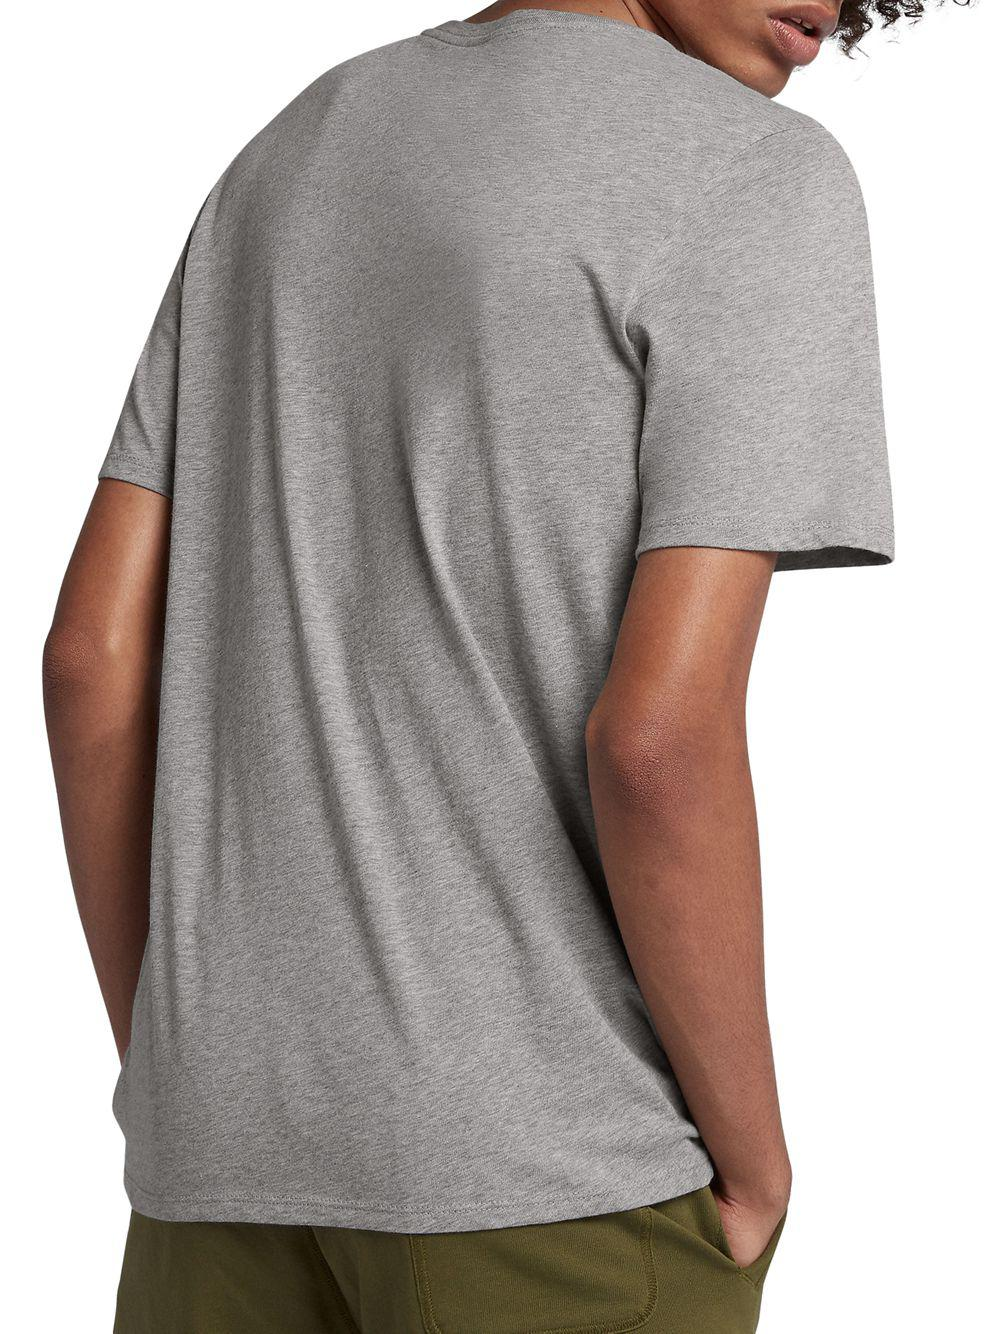 51f0ee4e Lyst - Nike Graphic Cotton Tee in Gray for Men